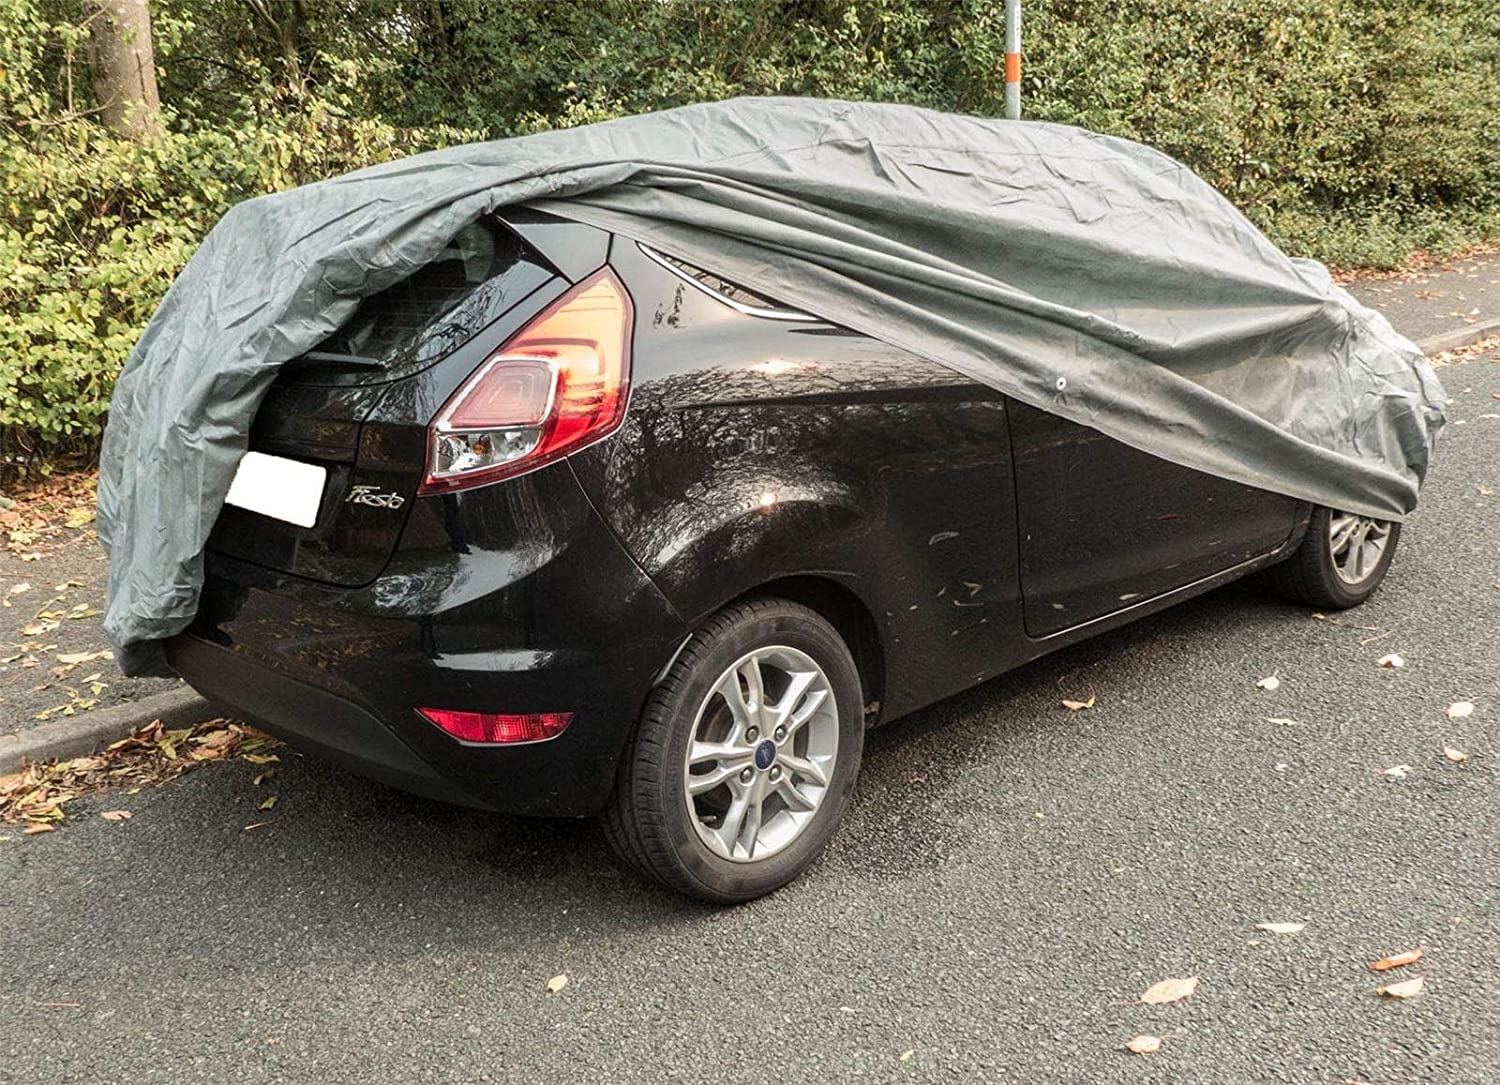 UKB4C Large Car Cover Water Resistant Breathable Rain UV Sun All Weather Protection for Indoor Outdoor Use